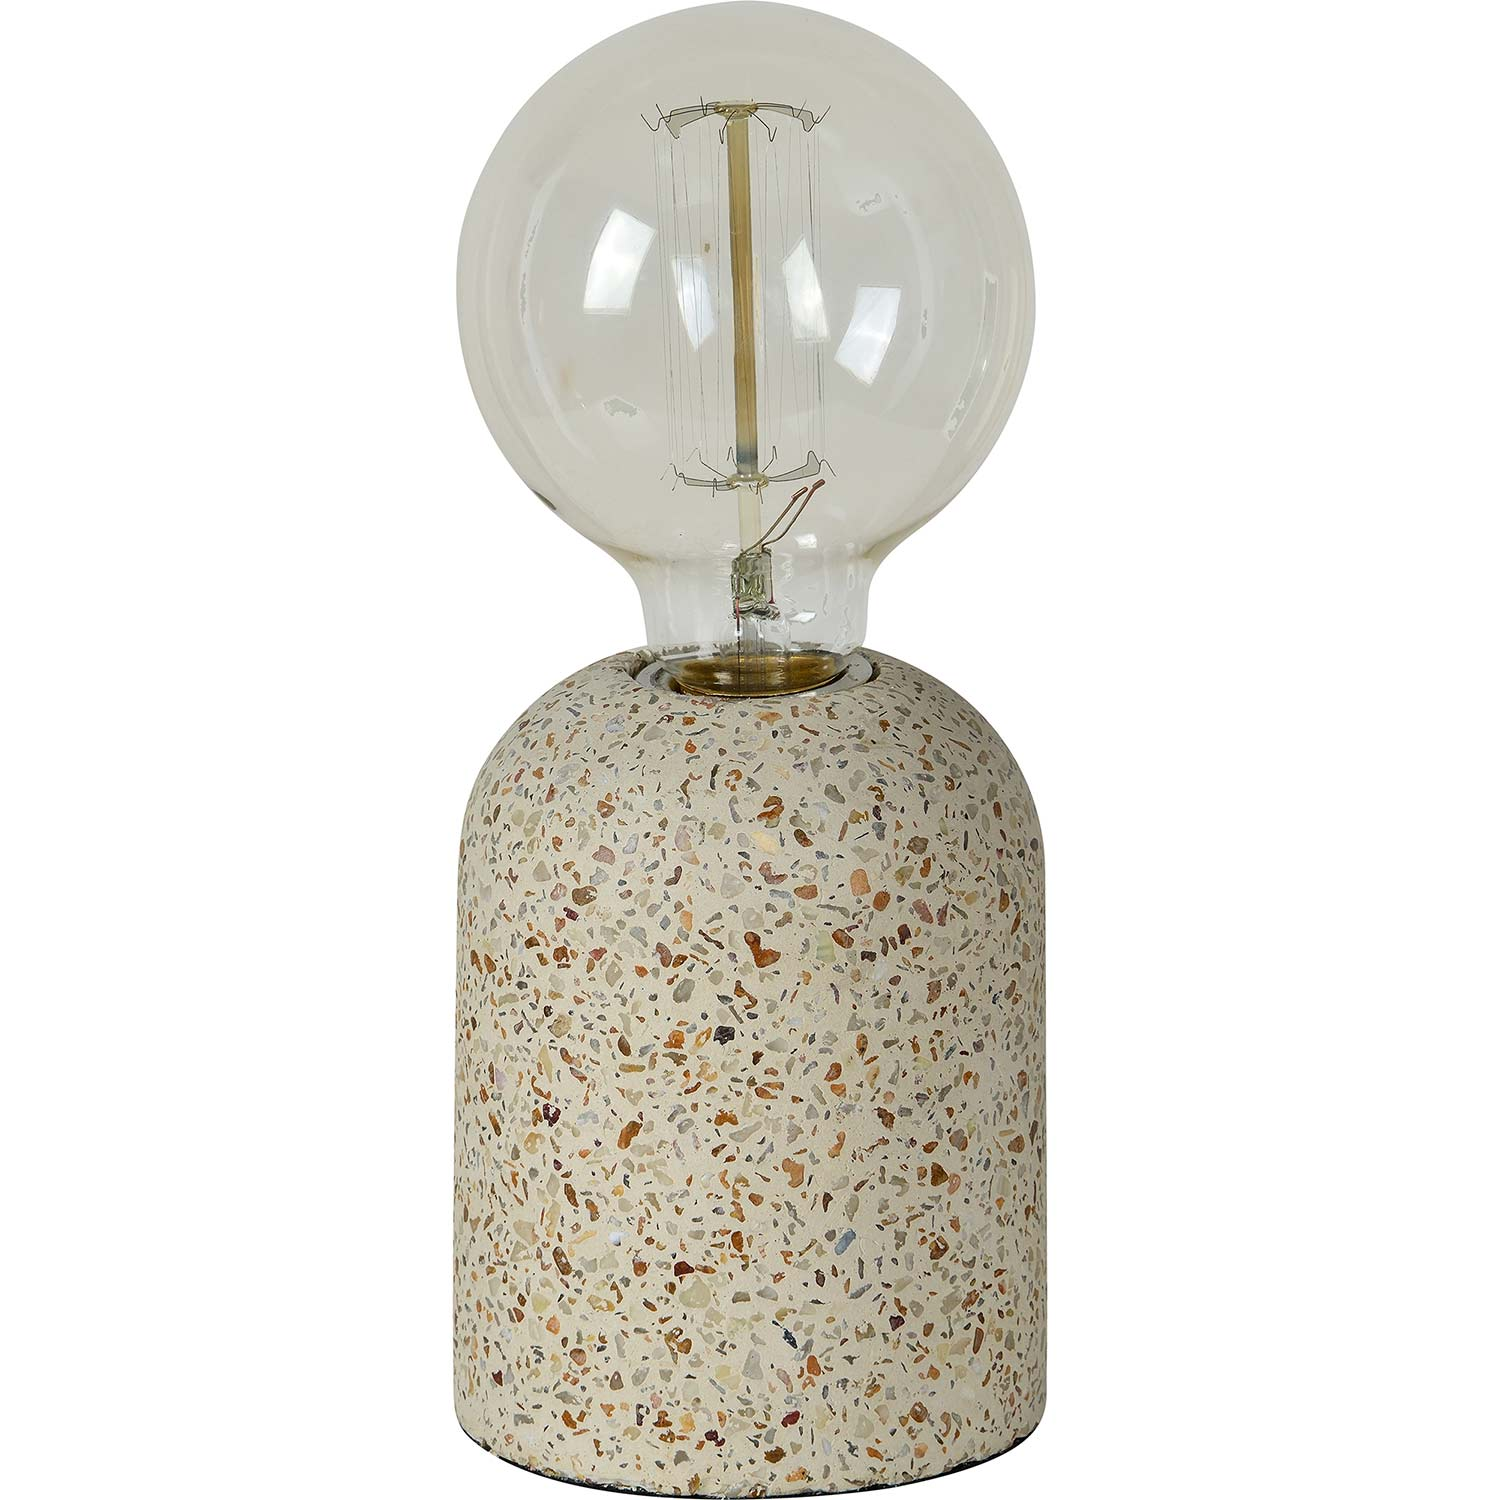 Ren-Wil Cherisse Table Lamp - Grey Cement/Stone Speckles